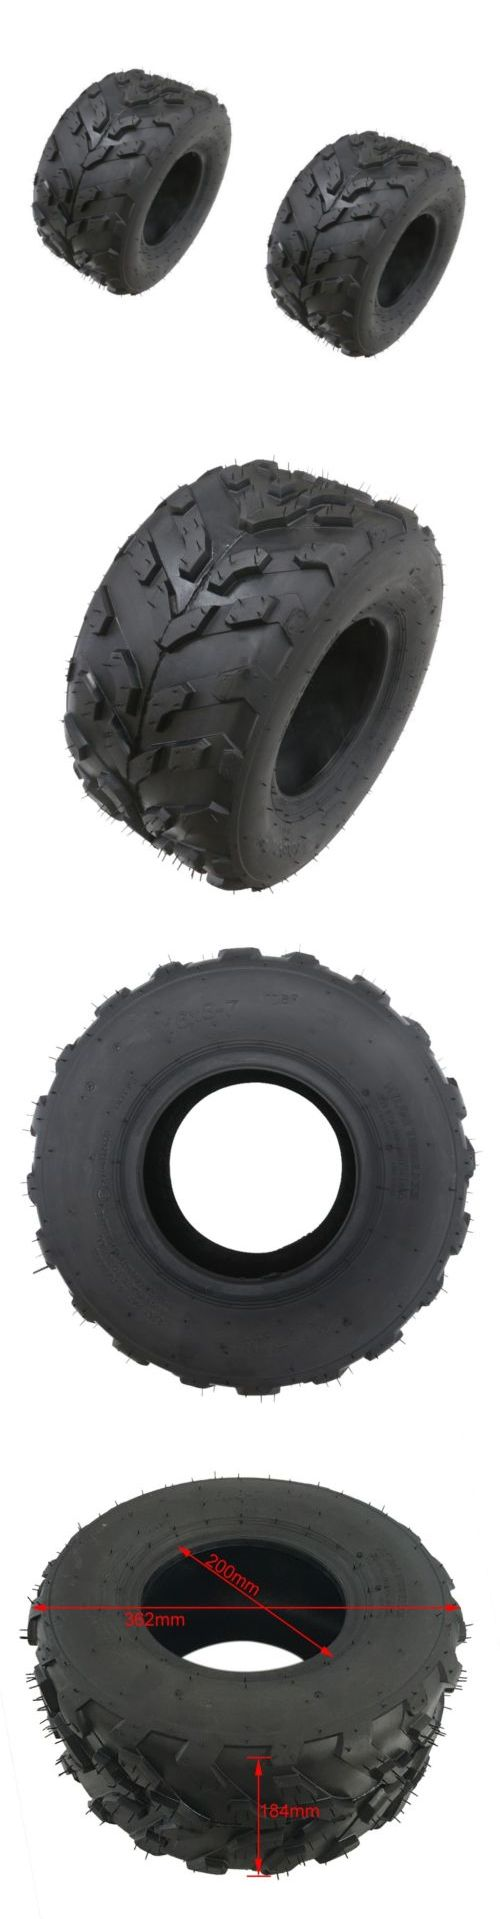 Training Wheels 177839: Pair Of 16X8-7 16 8-7 Tire Tyre 90Cc 125Cc Atv Quad Bike Buggy Ride On Mower Us -> BUY IT NOW ONLY: $79.99 on eBay!